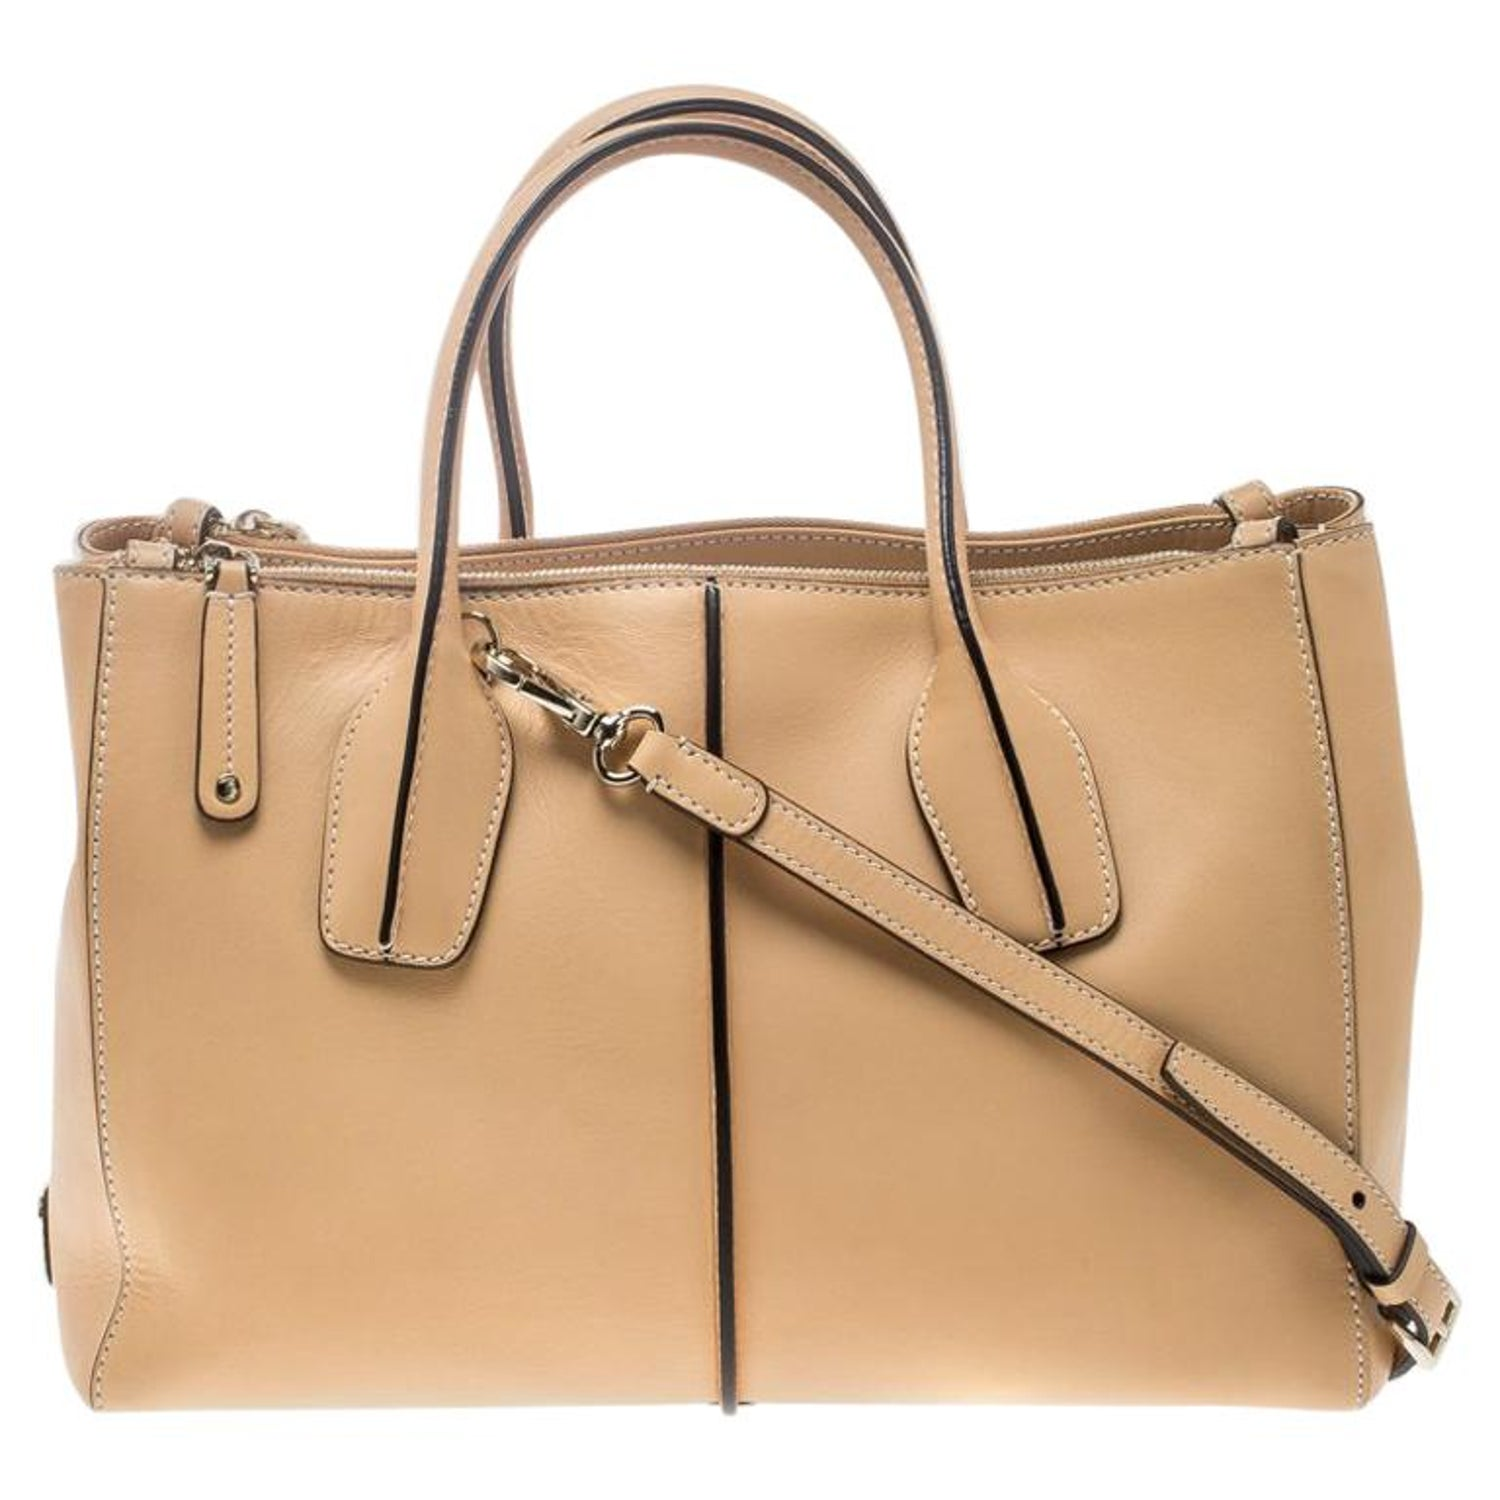 163d9037d19b Tod's Beige Leather D-Styling Shopper Top Handle Bag For Sale at 1stdibs